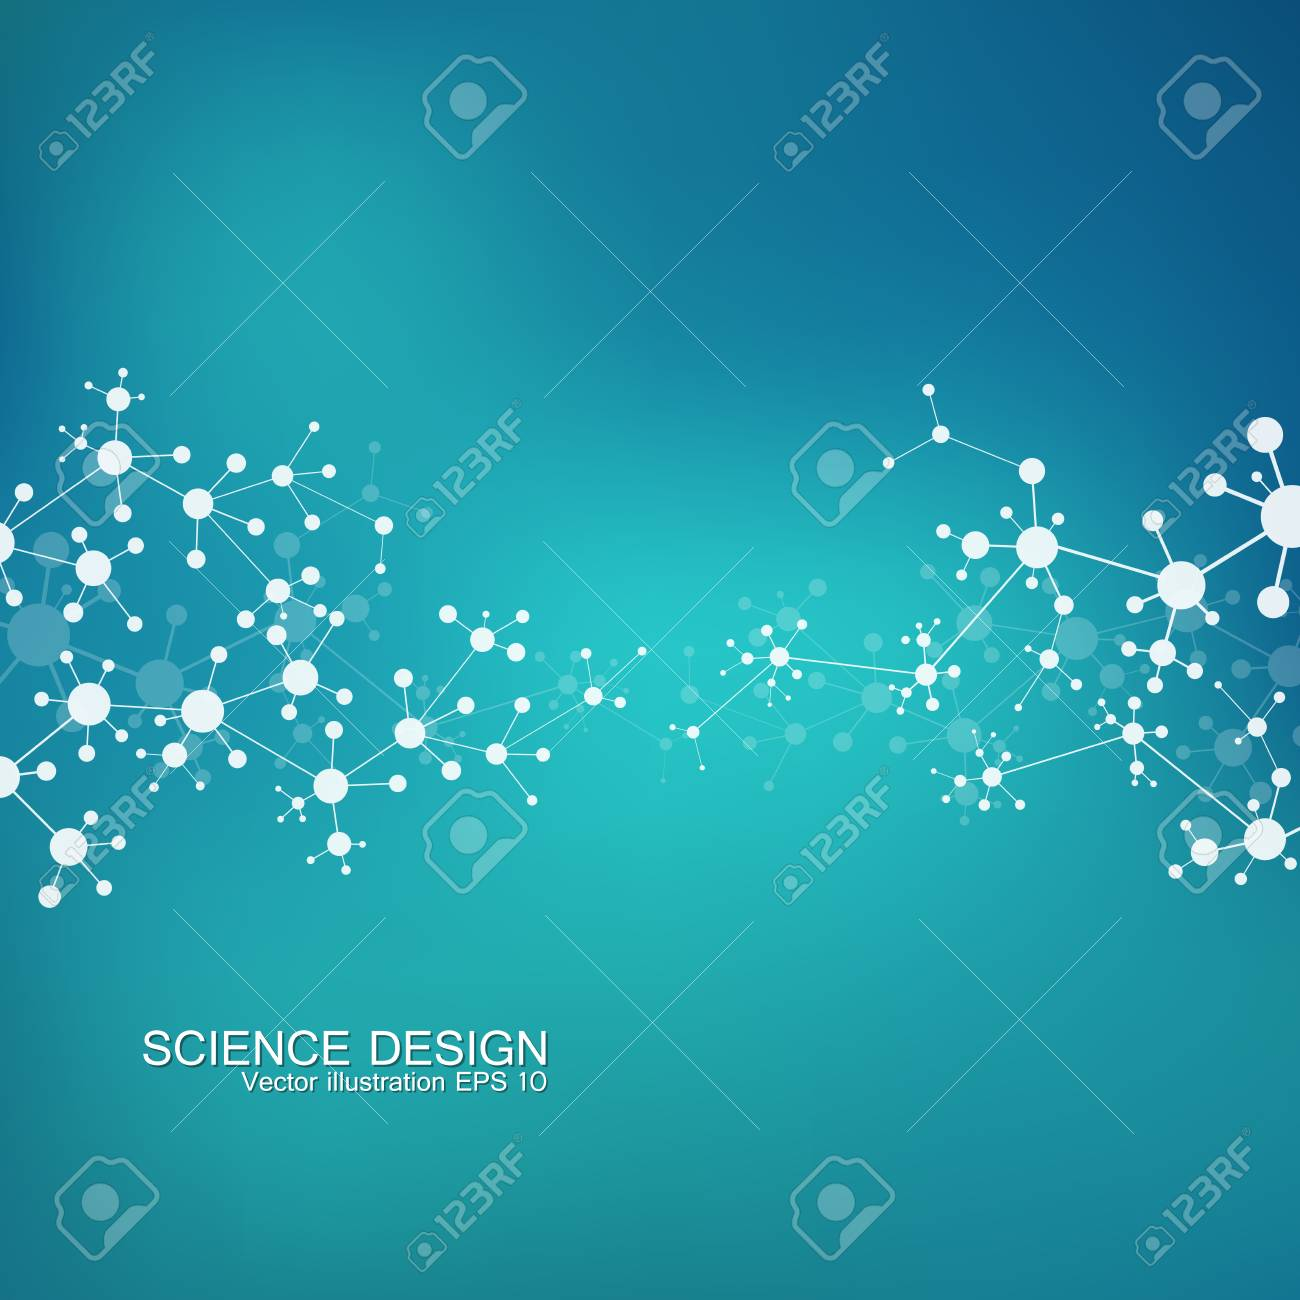 Structure molecule of DNA and neurons. Structural atom. Chemical compounds. Medicine, science, technology concept. Geometric abstract background. Vector illustration for your design - 61658580